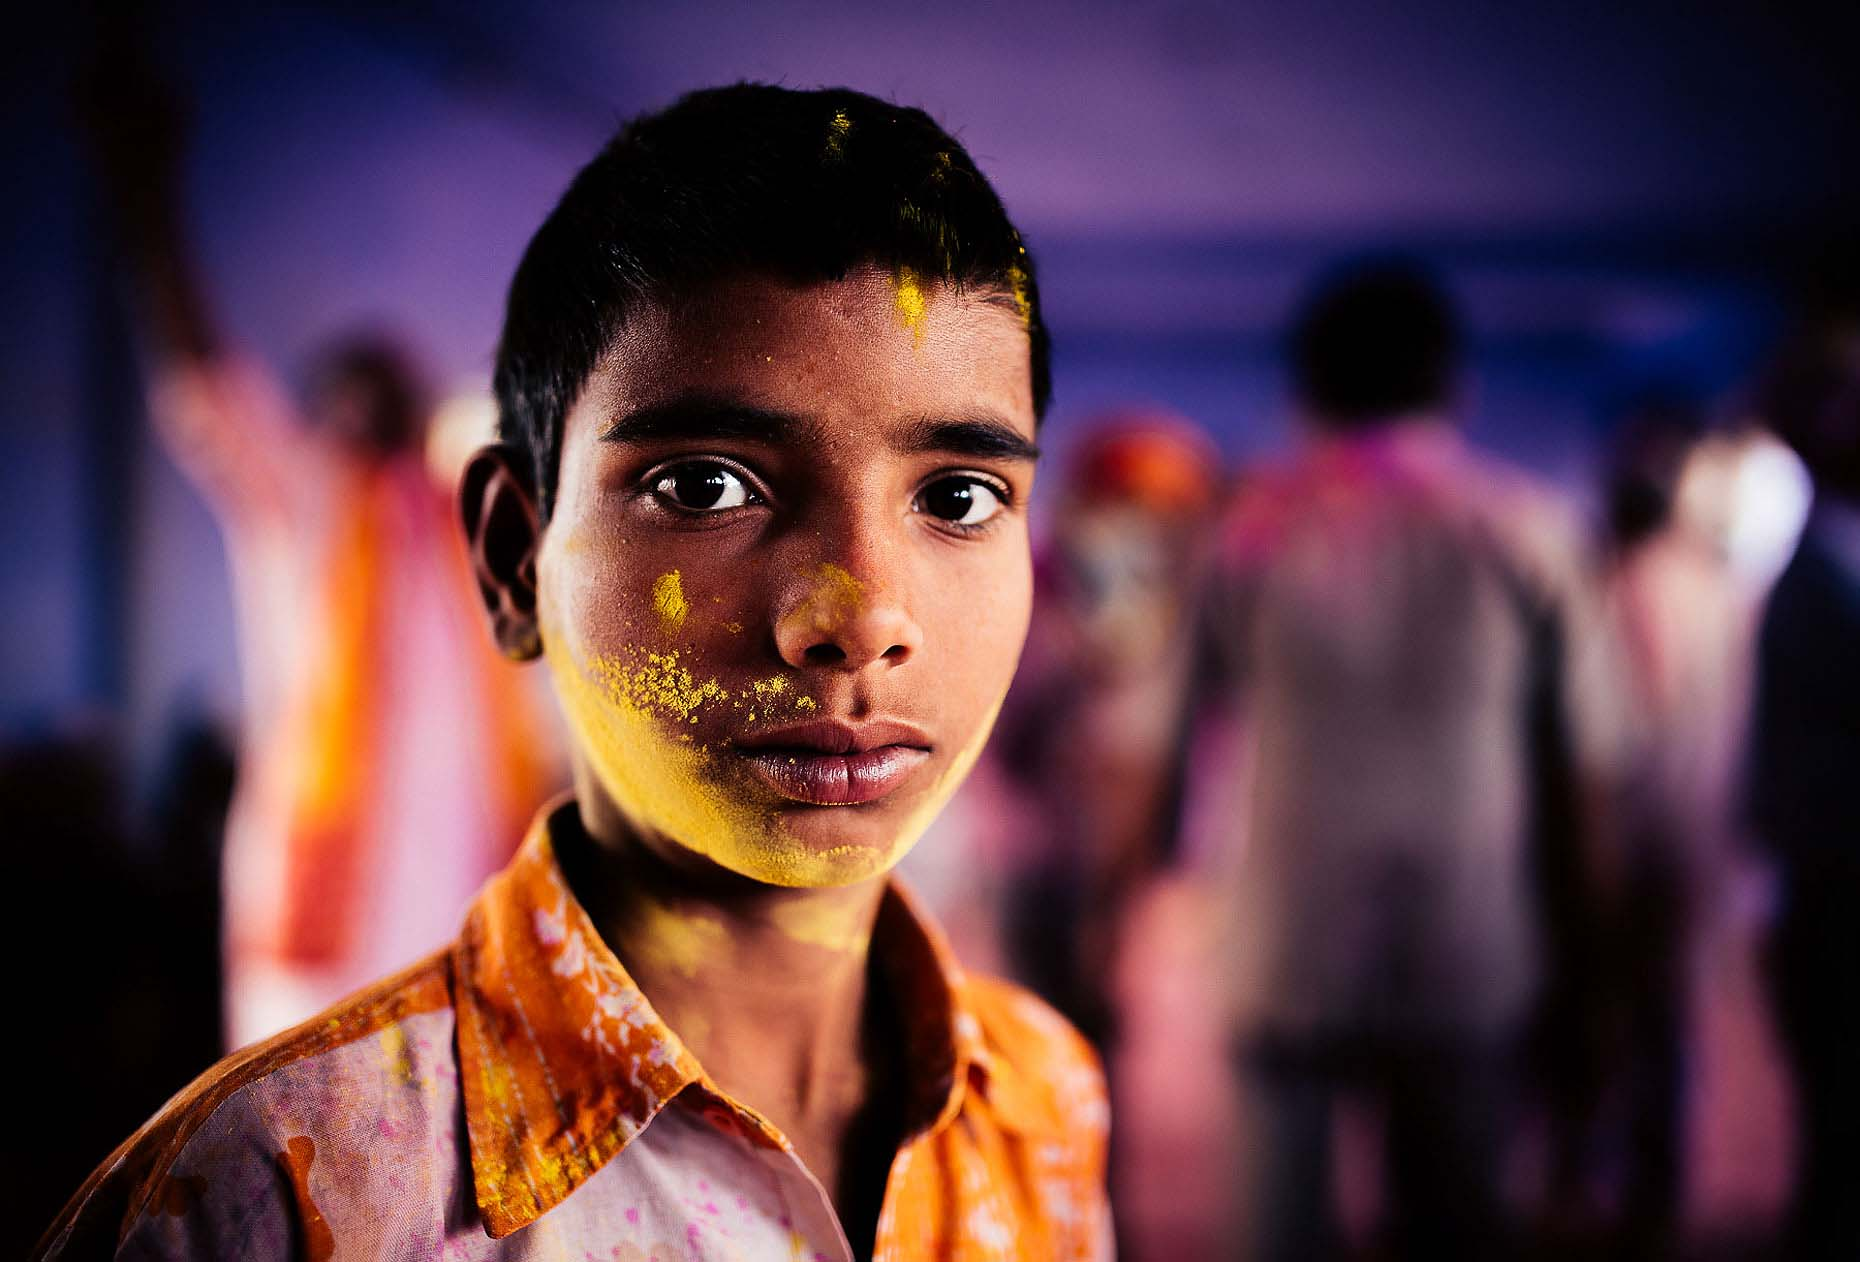 Holi-Festival-Colour-Portrait-Boy-35mm-India-003